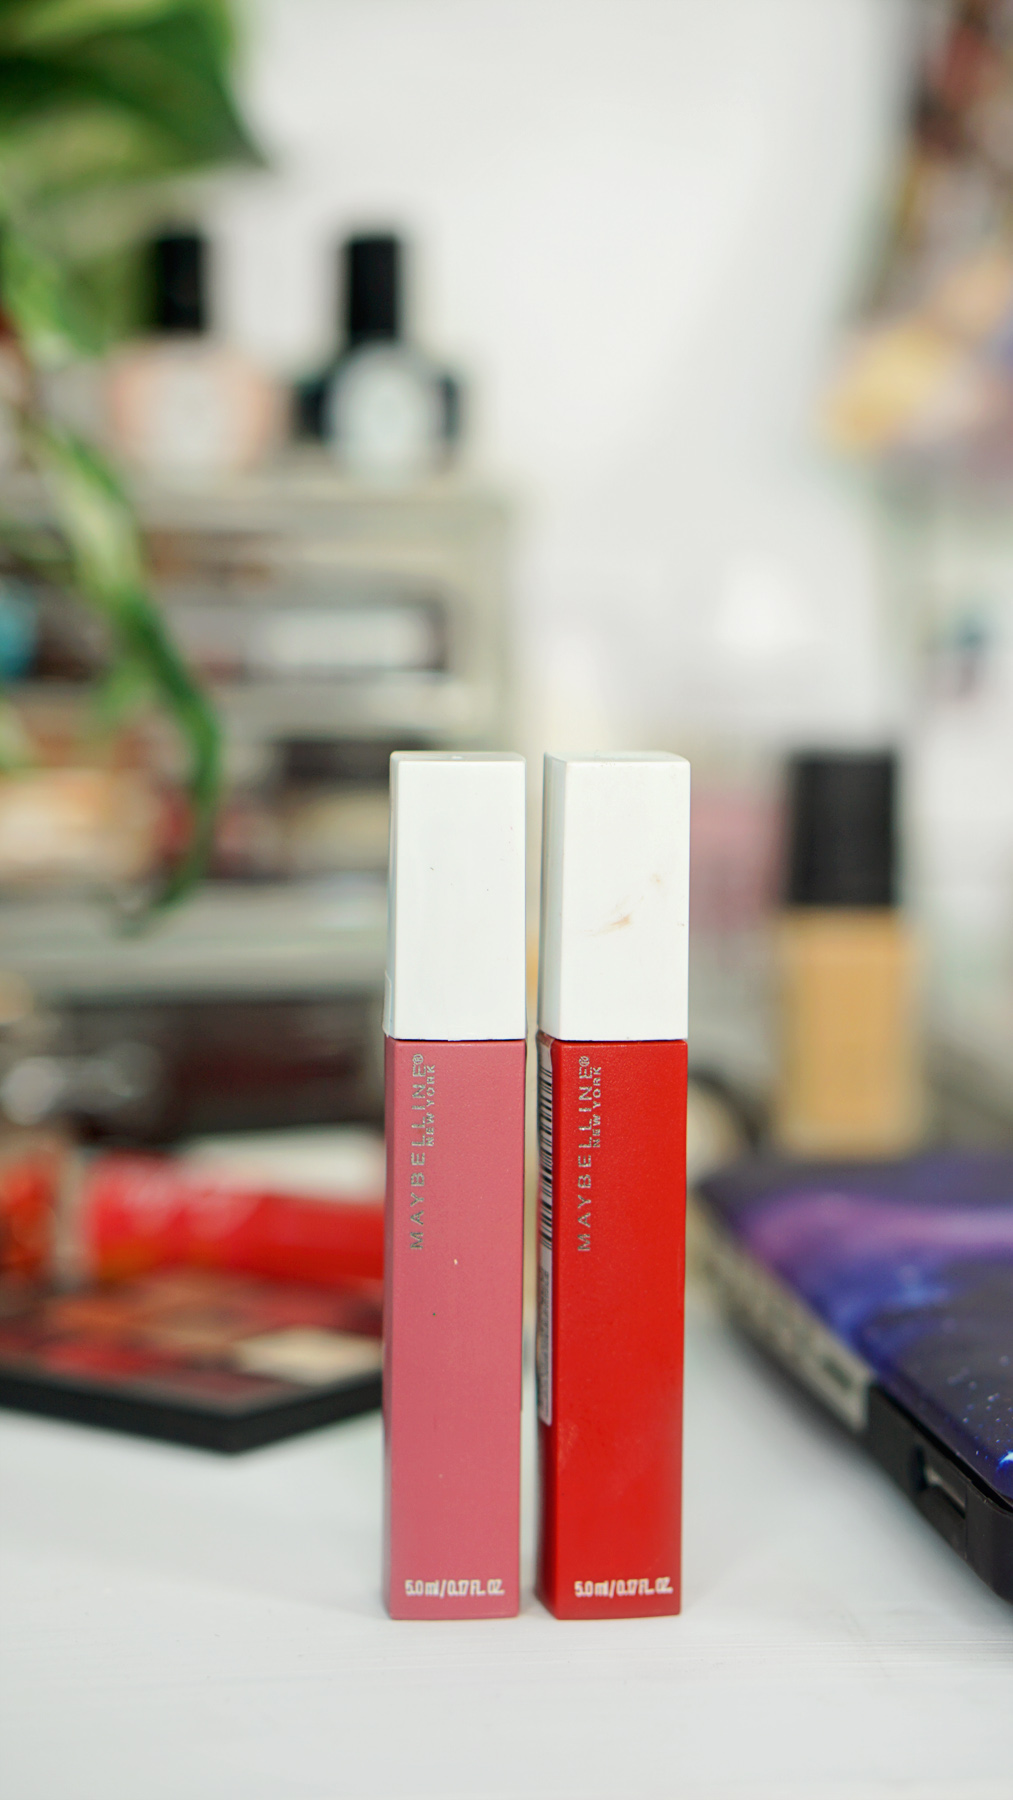 Maybelline Super Stay Matte Ink Beauty District Review Labials